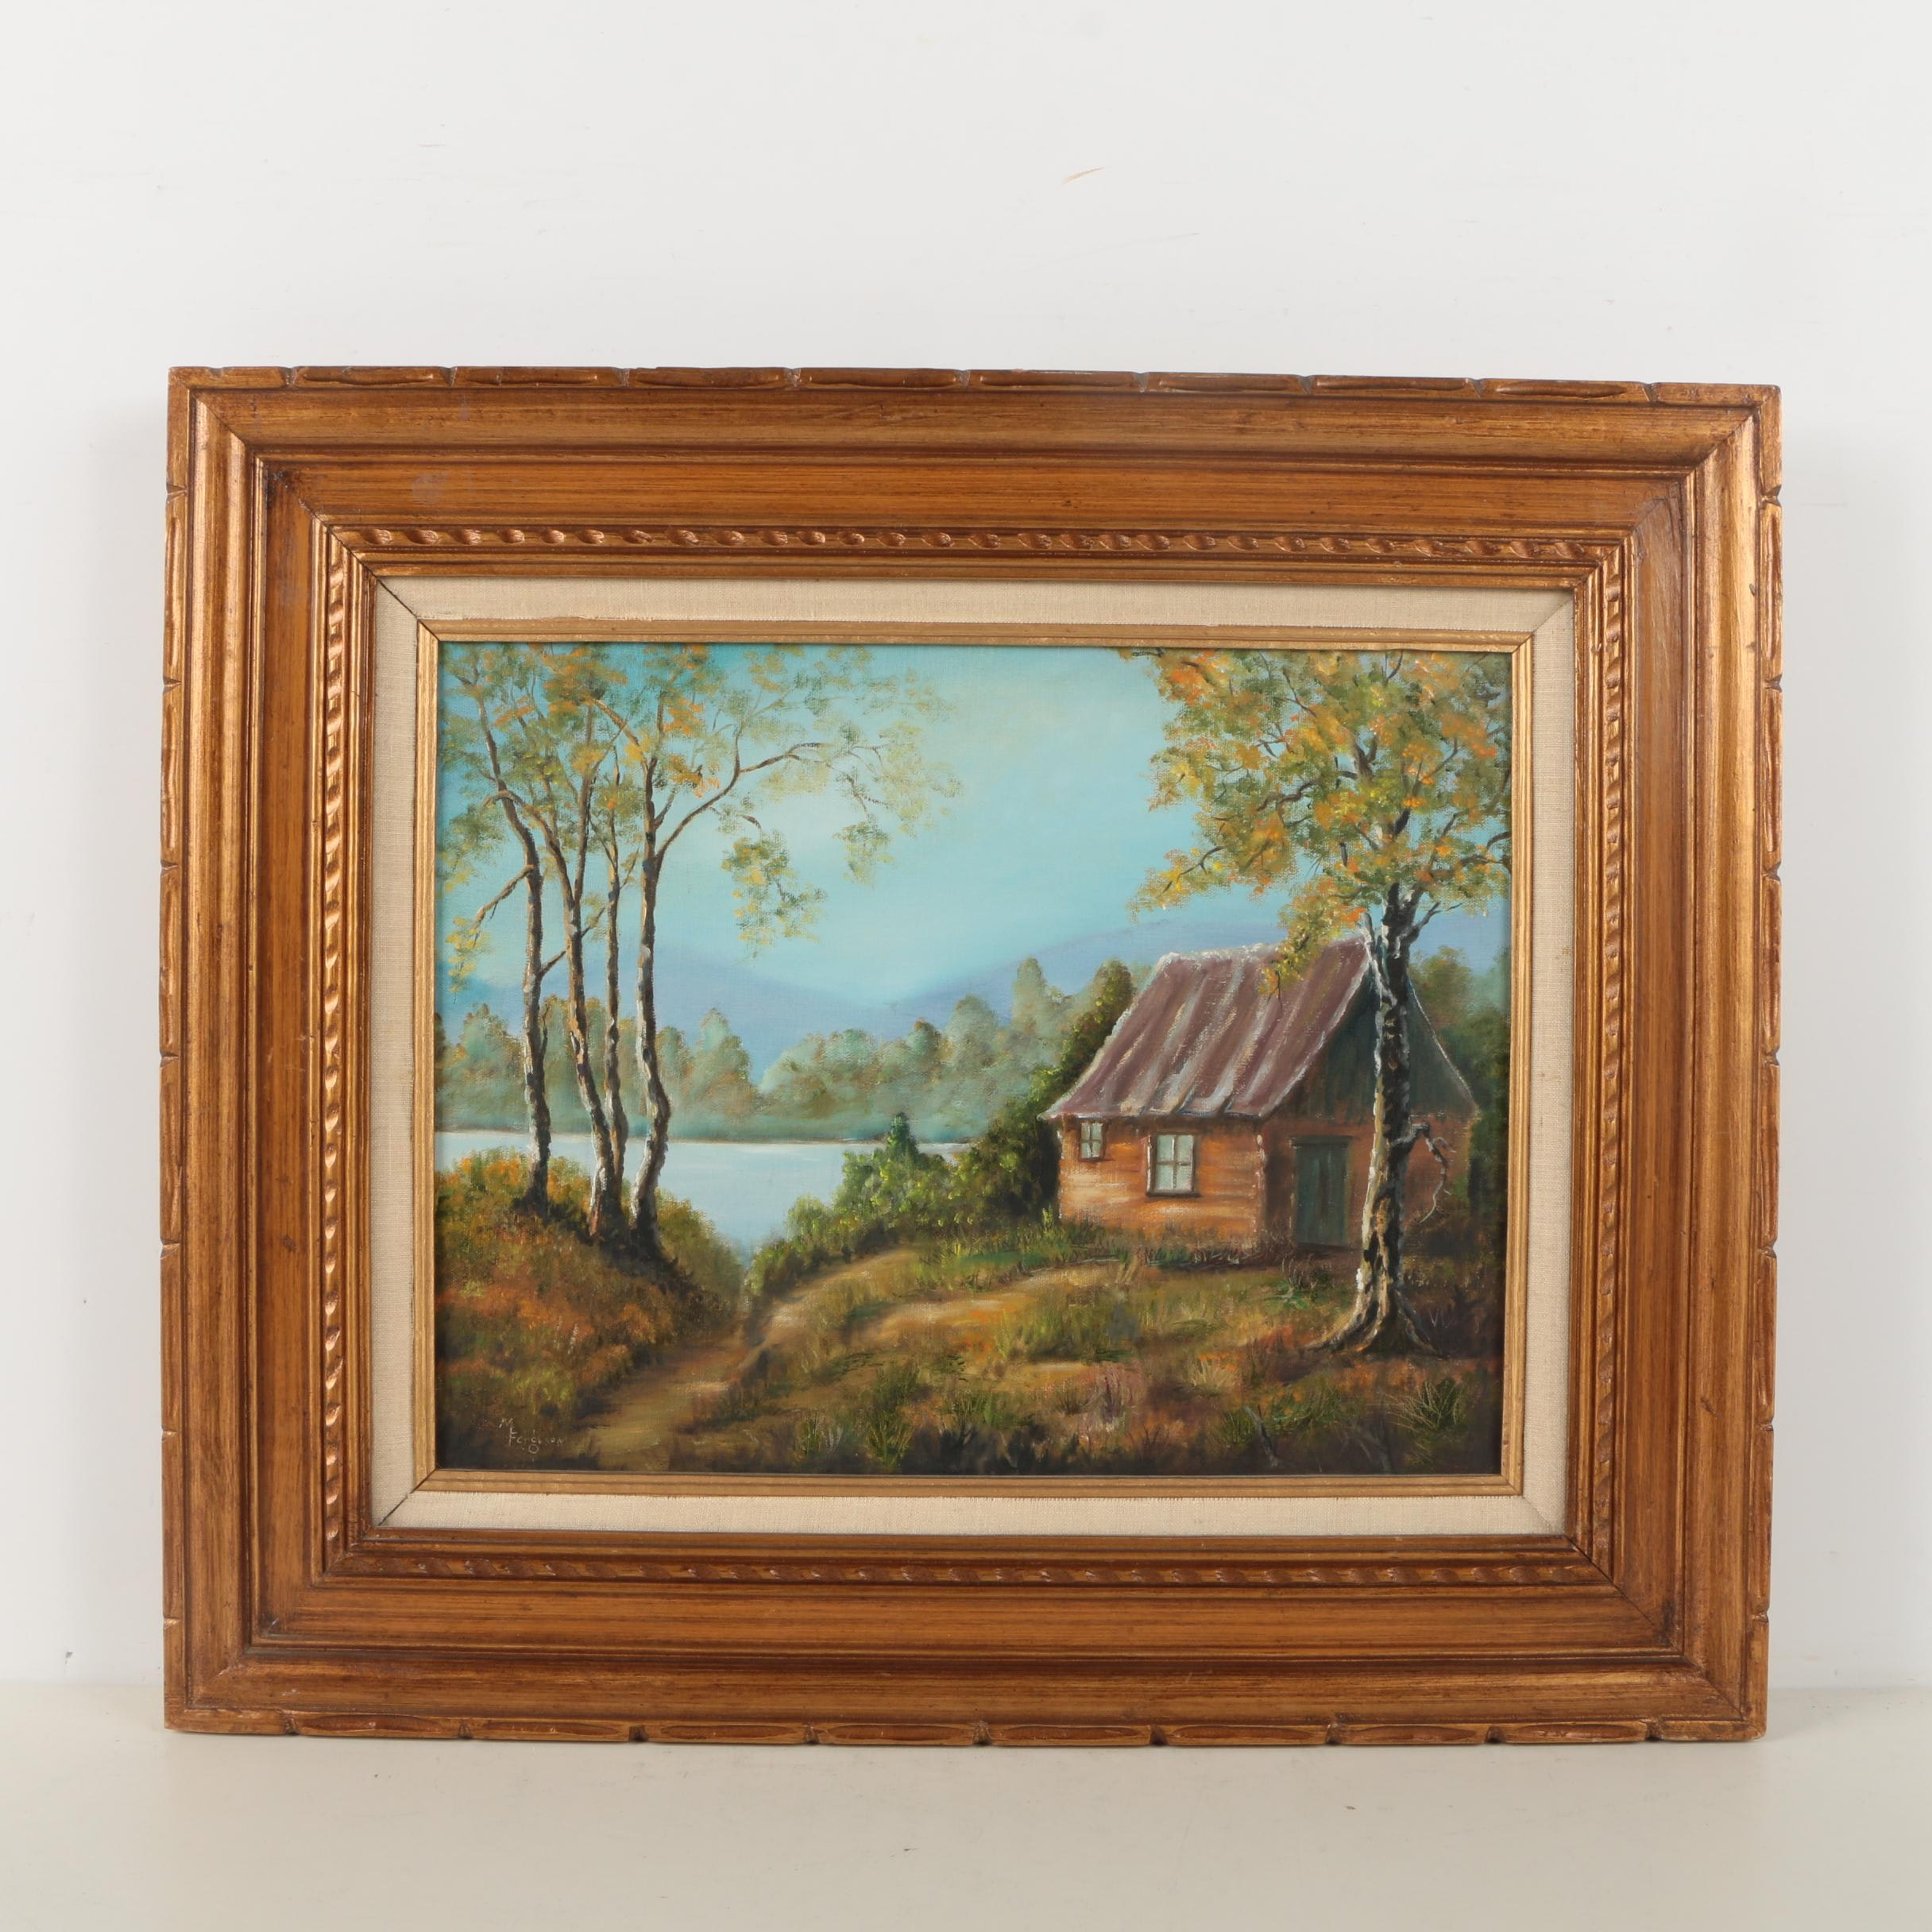 M. Ferguson Oil Painting of Lakeside Cabin